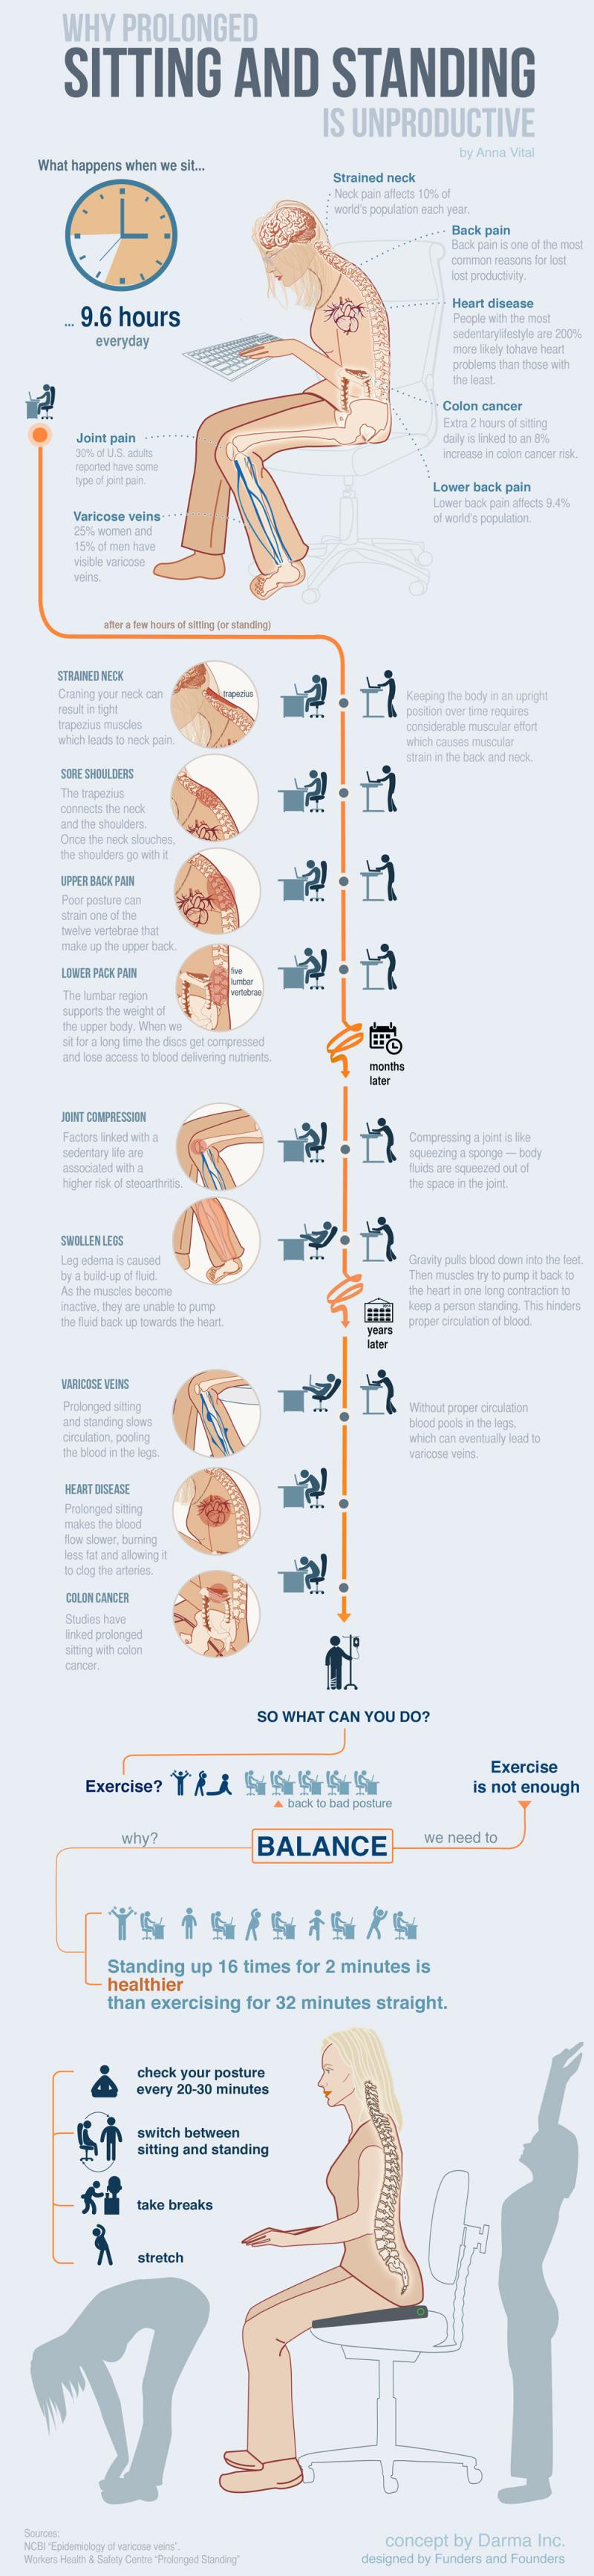 Why prolonged sitting and standing is unproductive #Infographic